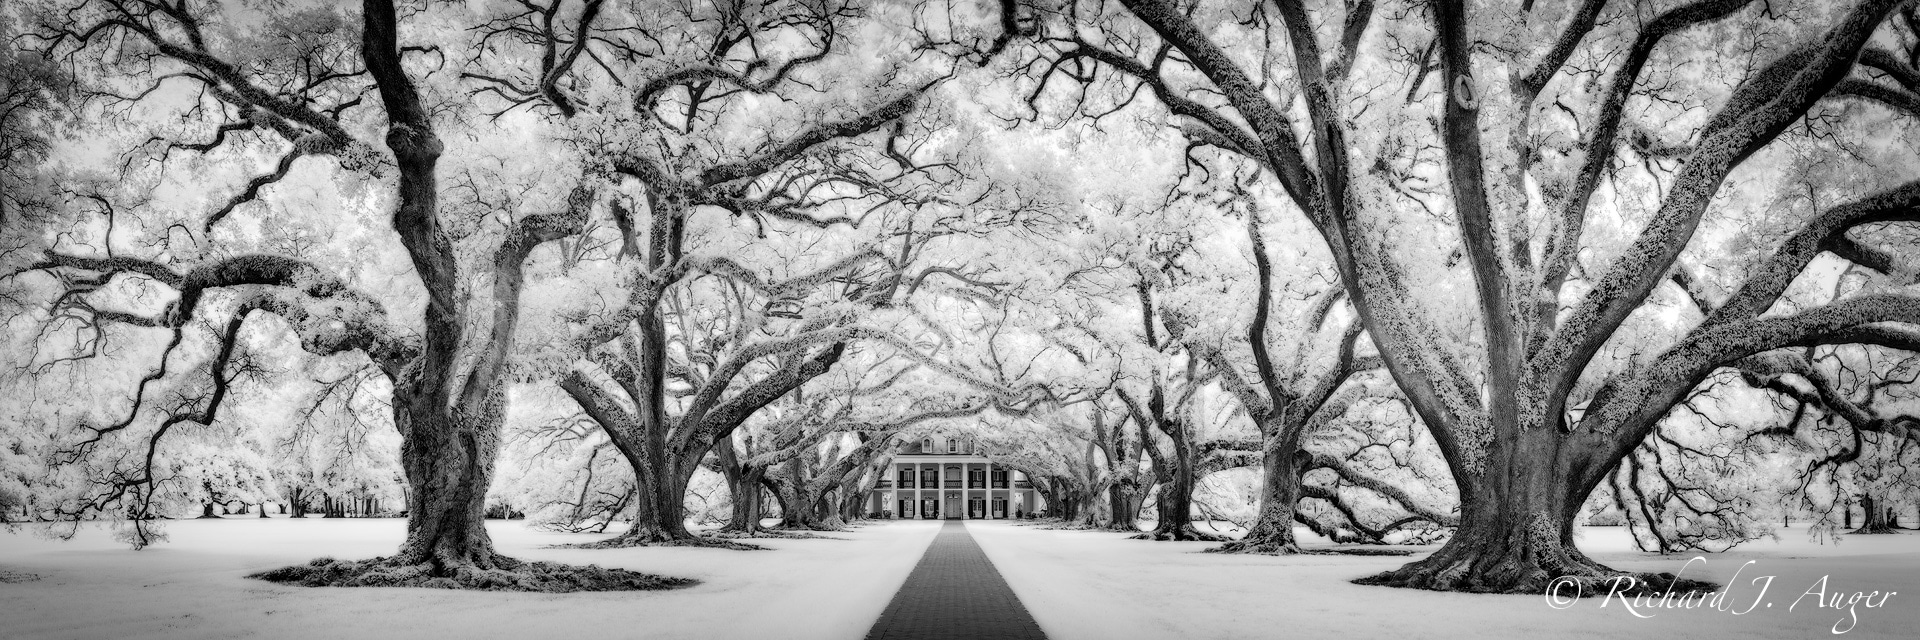 Oak Alley Plantation, Louisiana, Panorama, Oak Trees, Mansion, Haunted, New Orleans, black and white, photograph